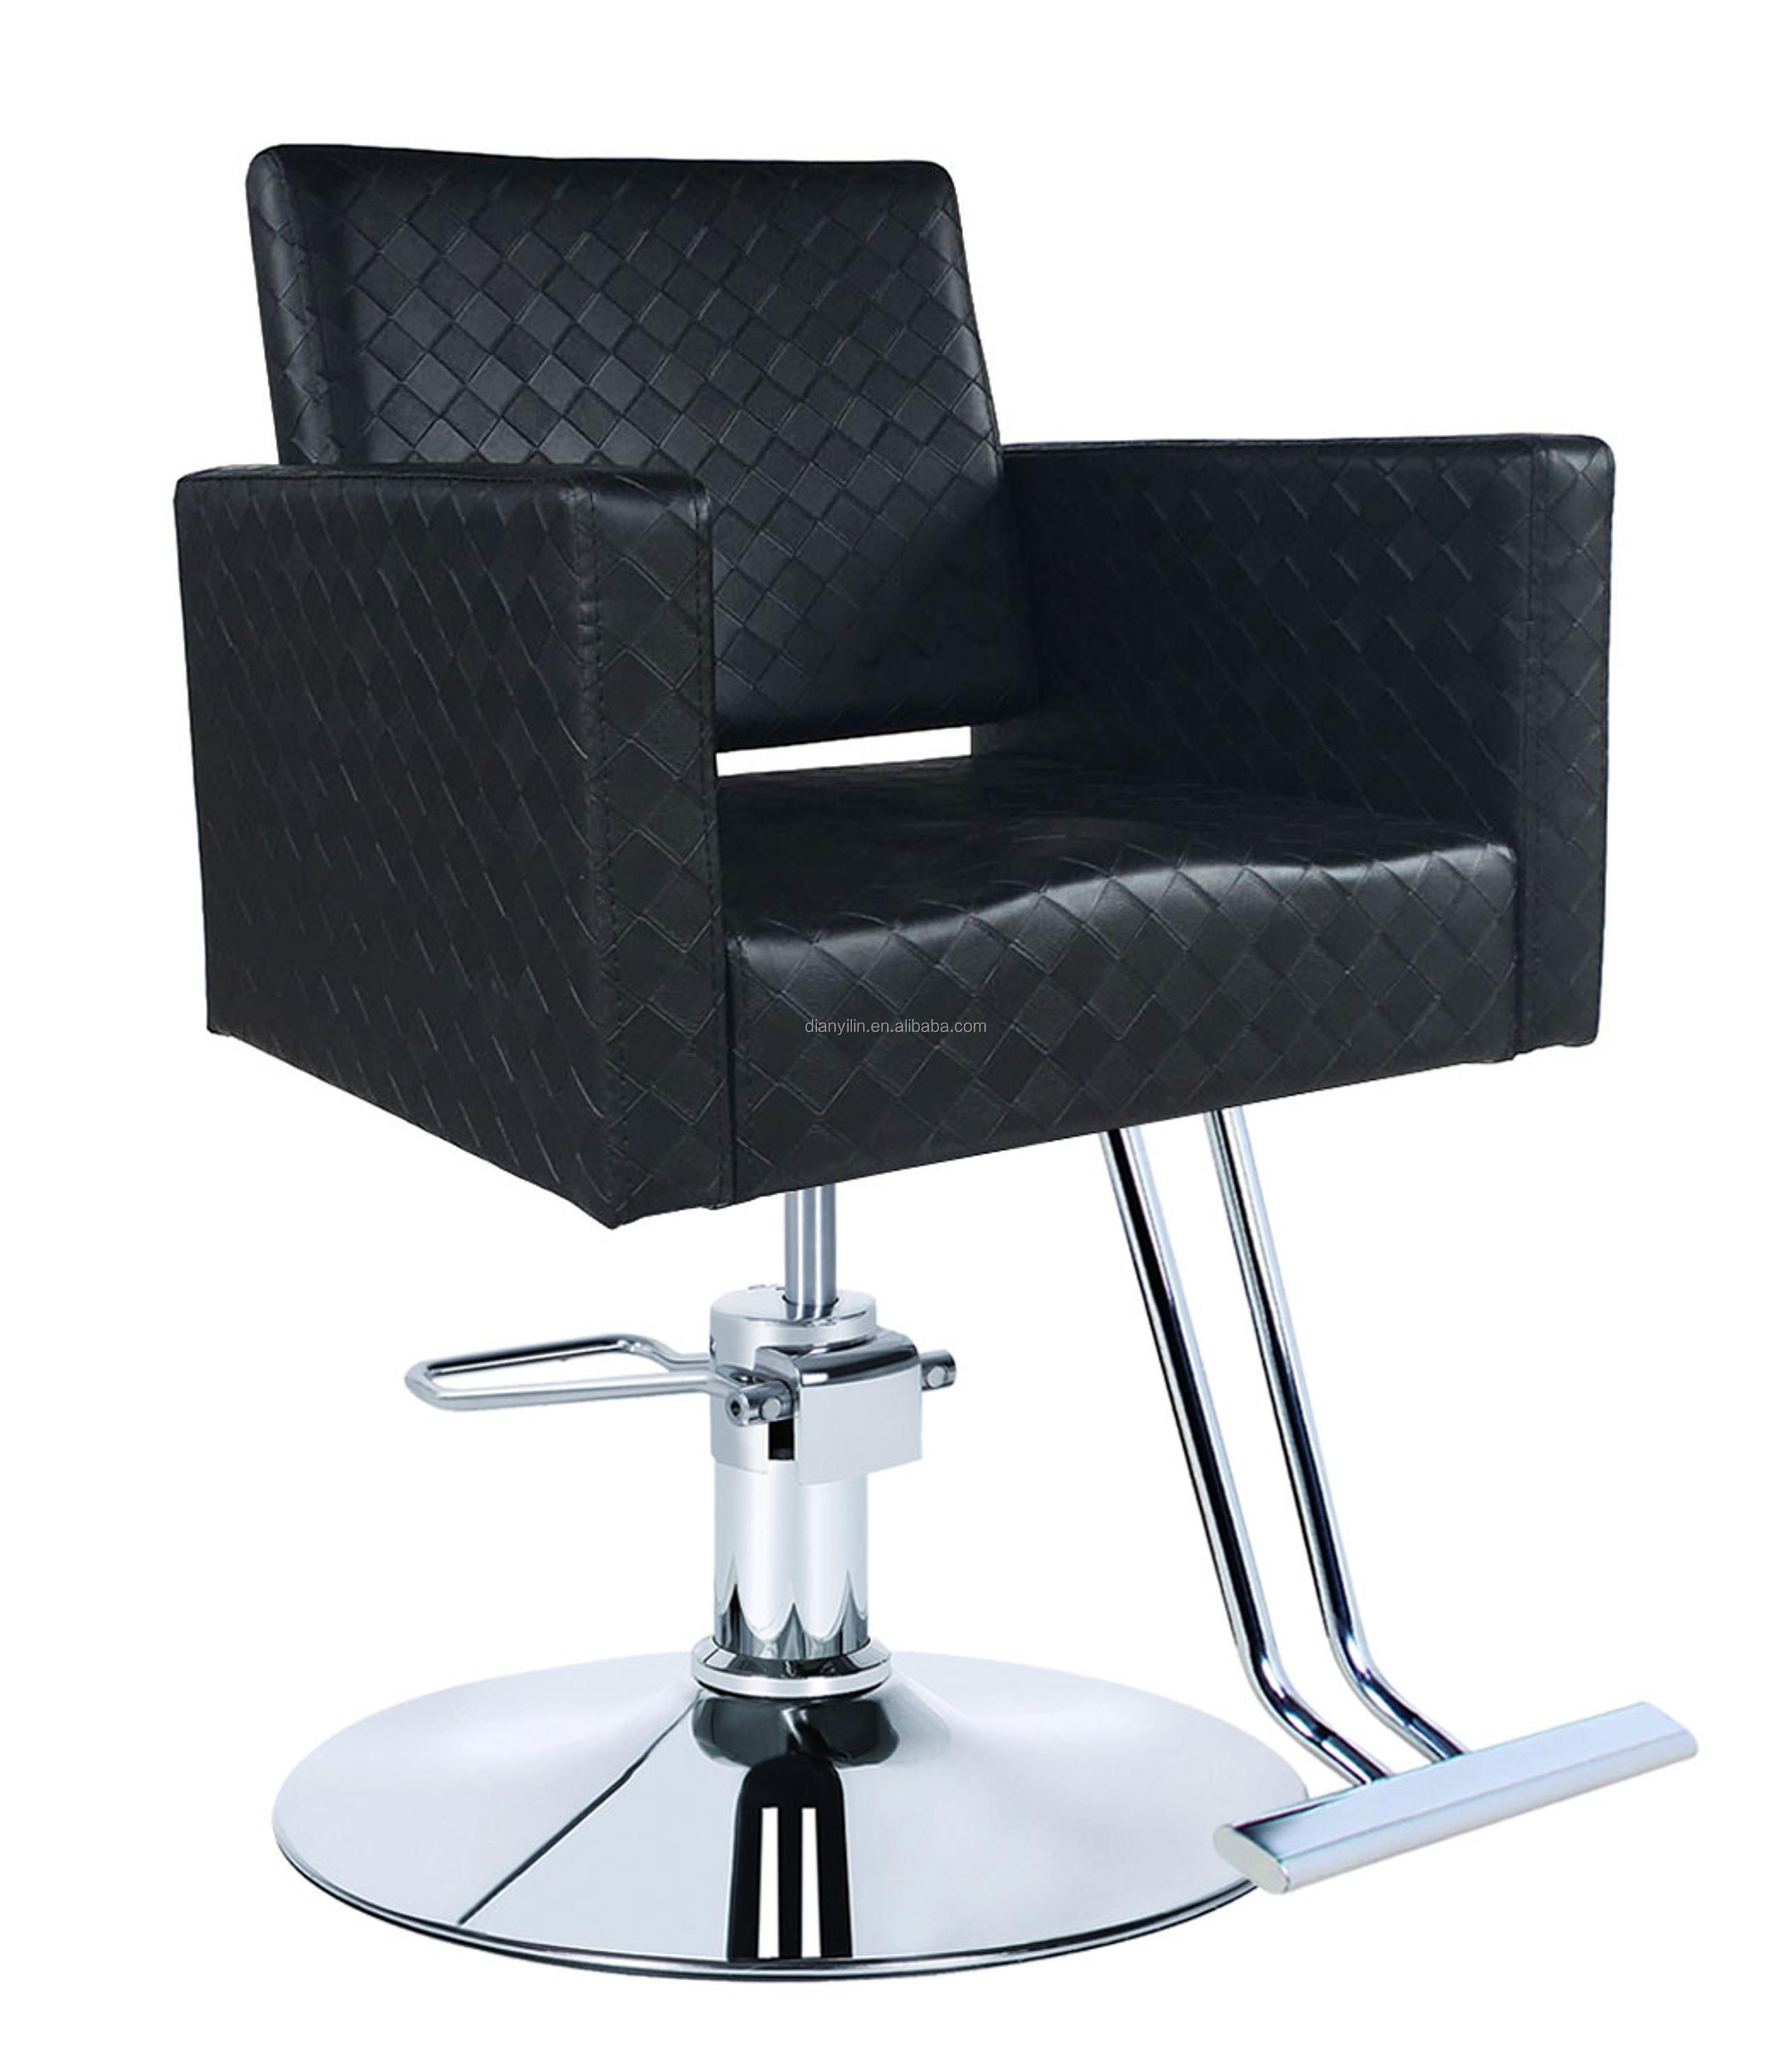 Used Barber Chairs Used Barber Chairs Suppliers and Manufacturers